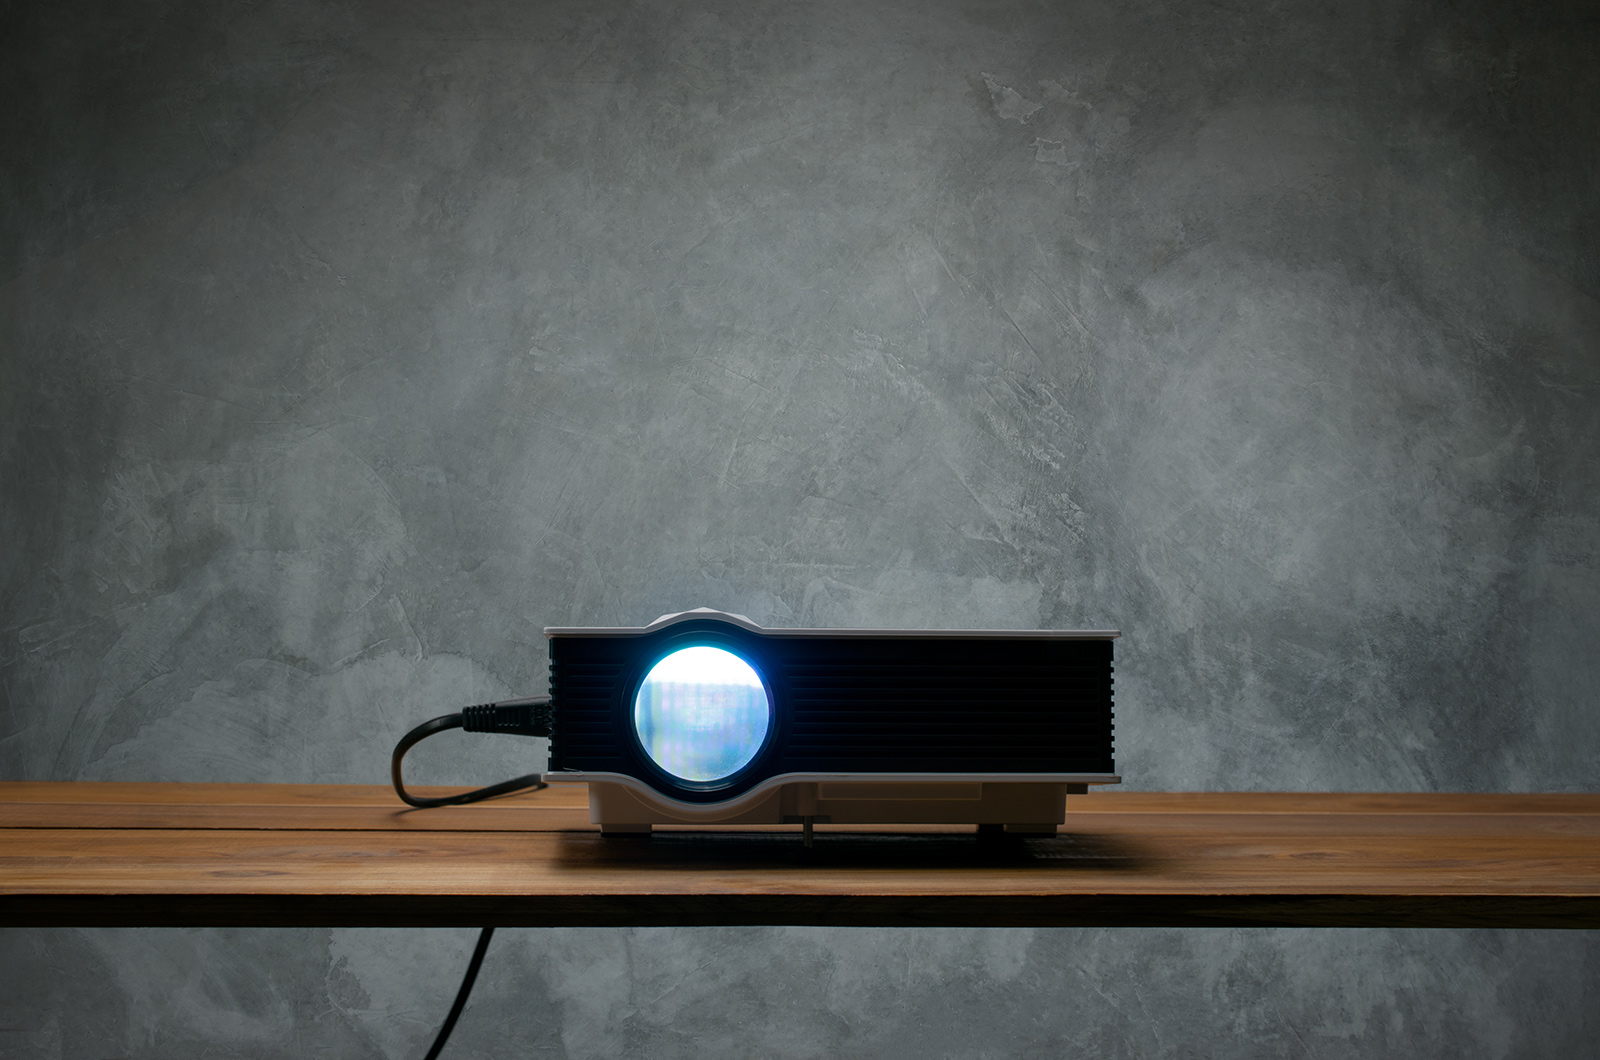 Forget Black Friday TV deals – these home theater projectors start at $500